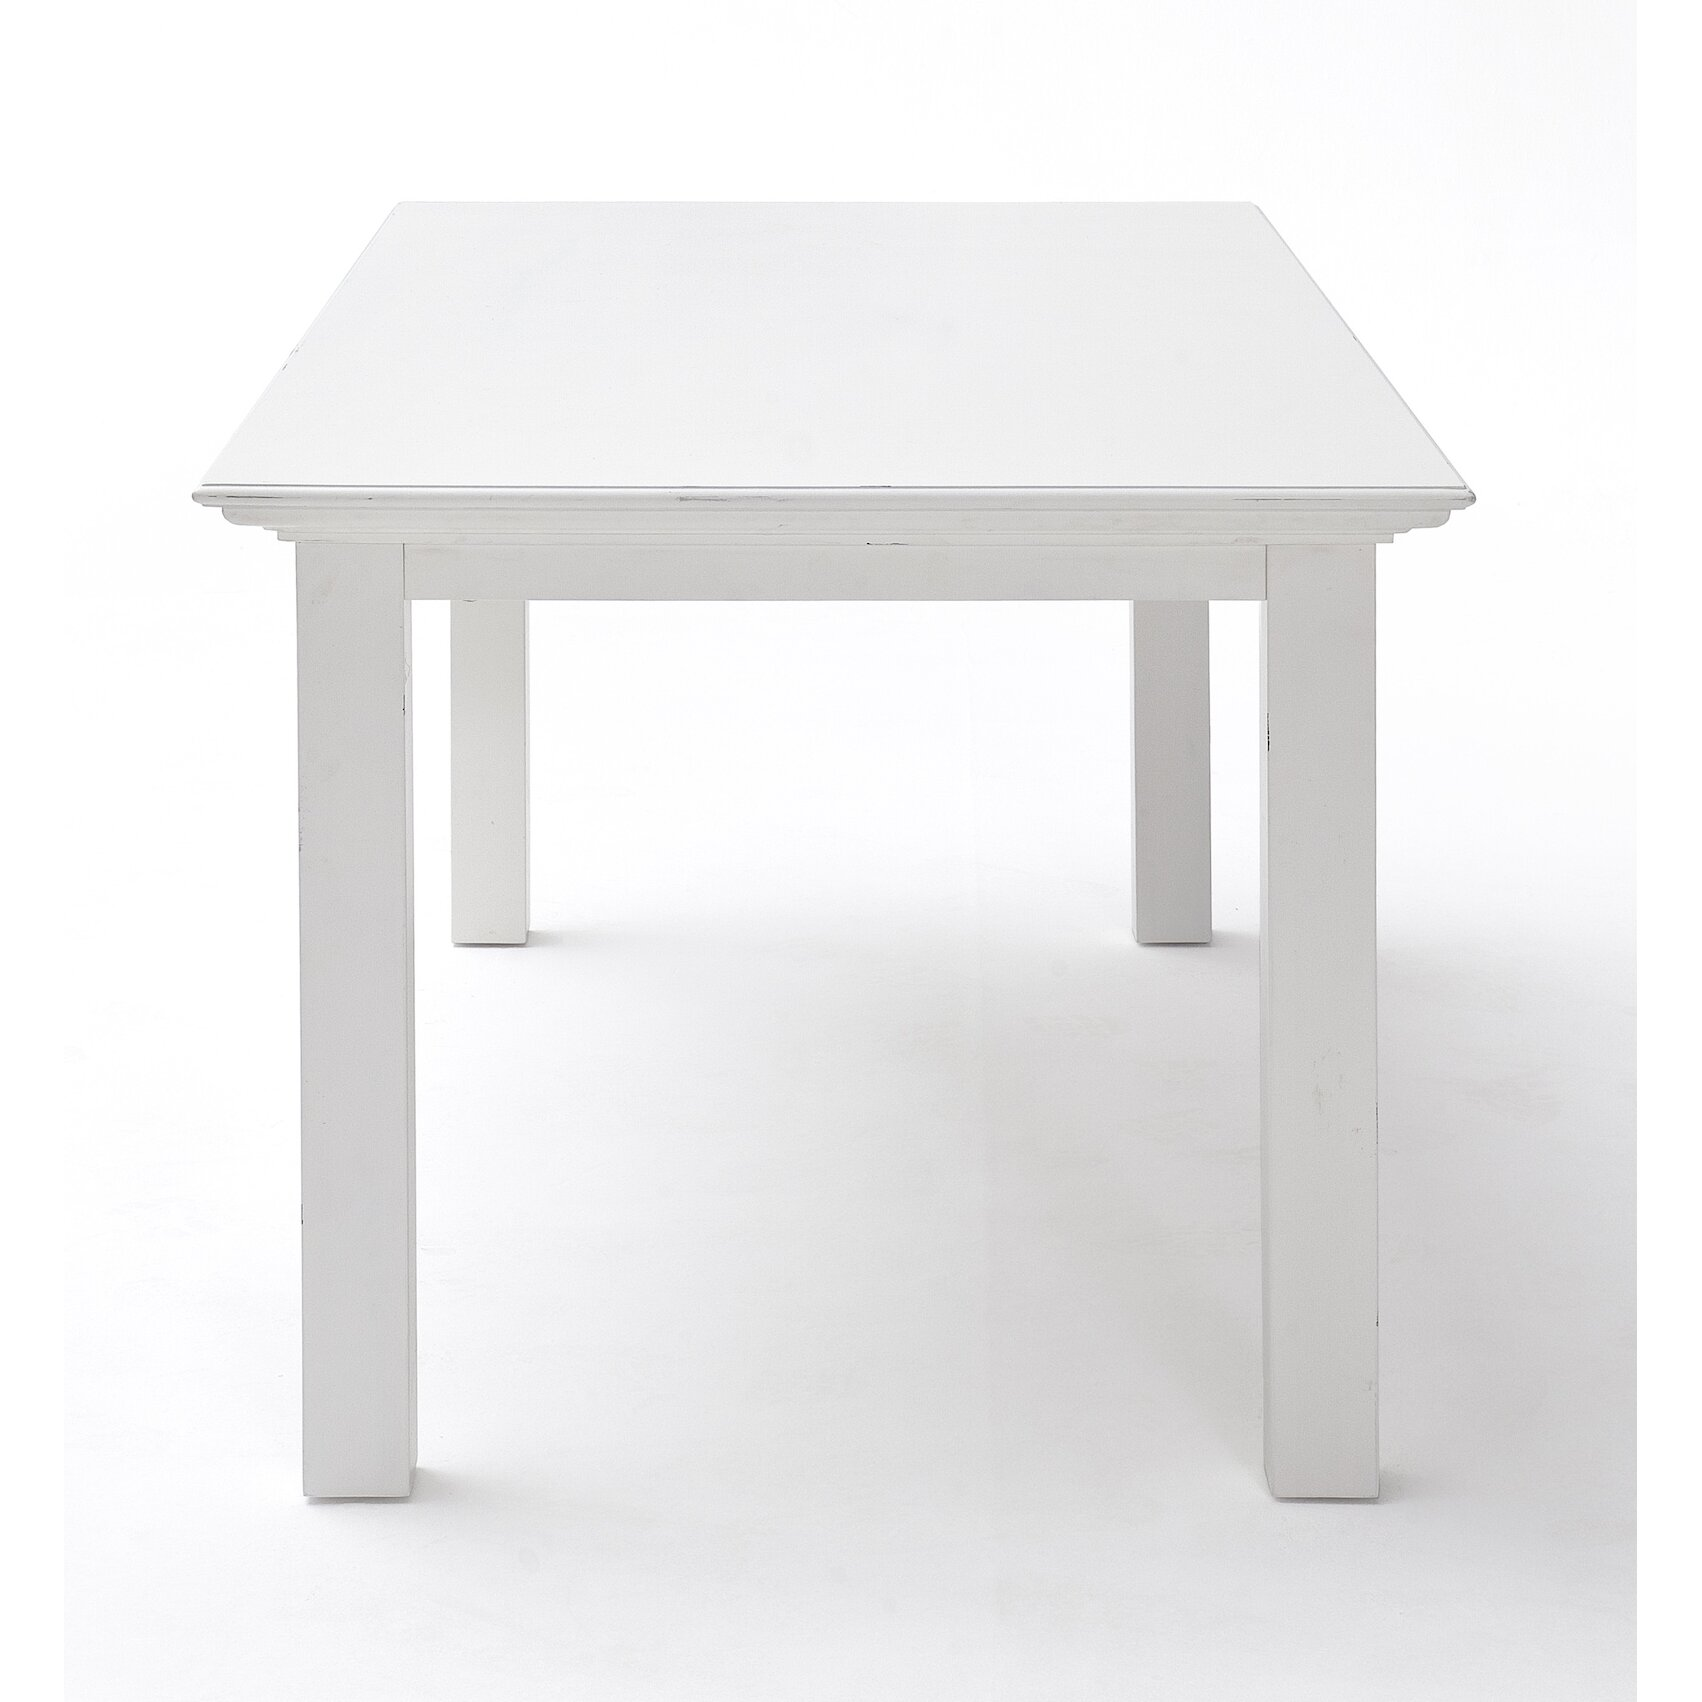 Crib for sale halifax - Novasolo Halifax 79 Quot Dining Table